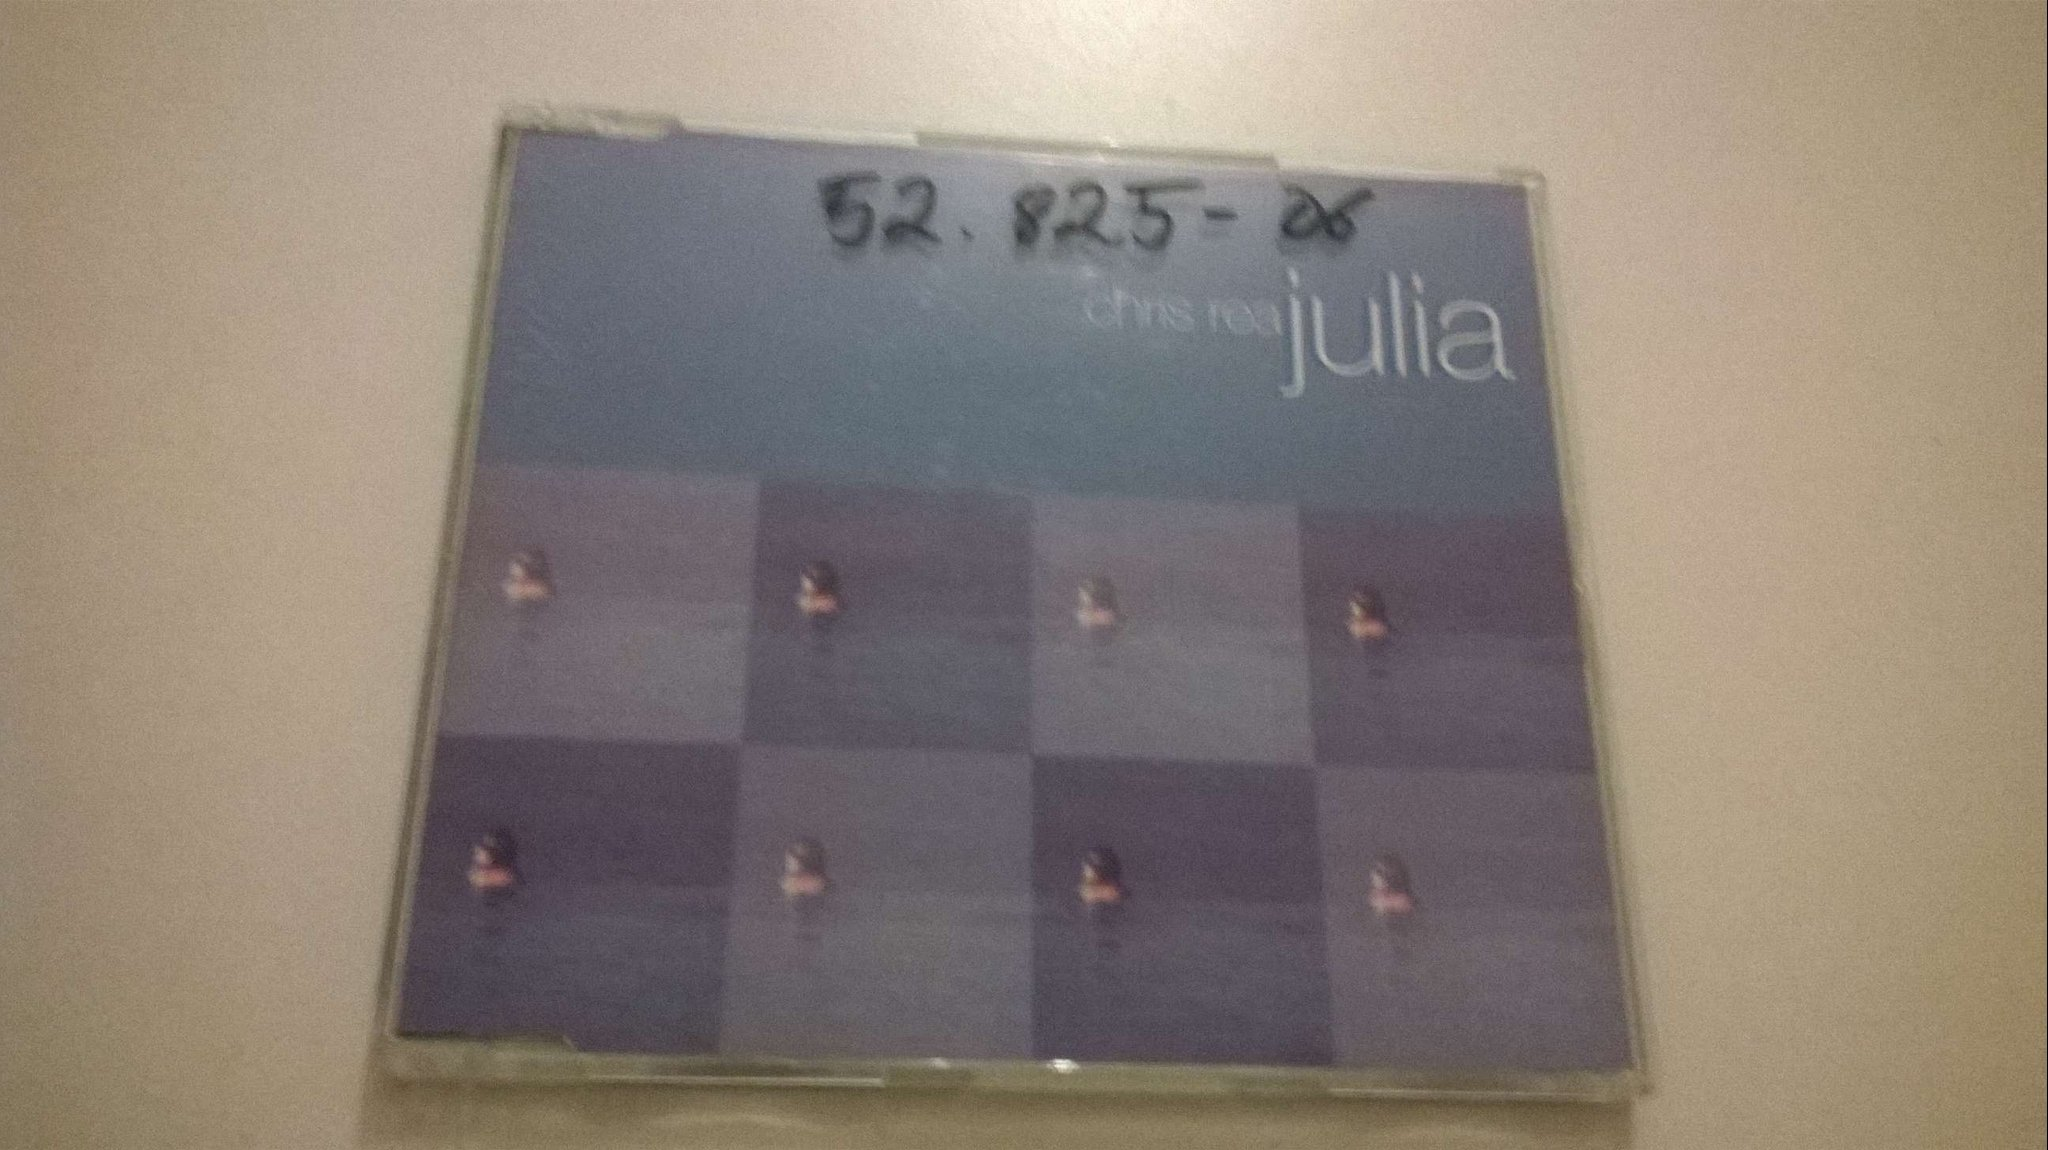 Chris Rea, Julia, CD